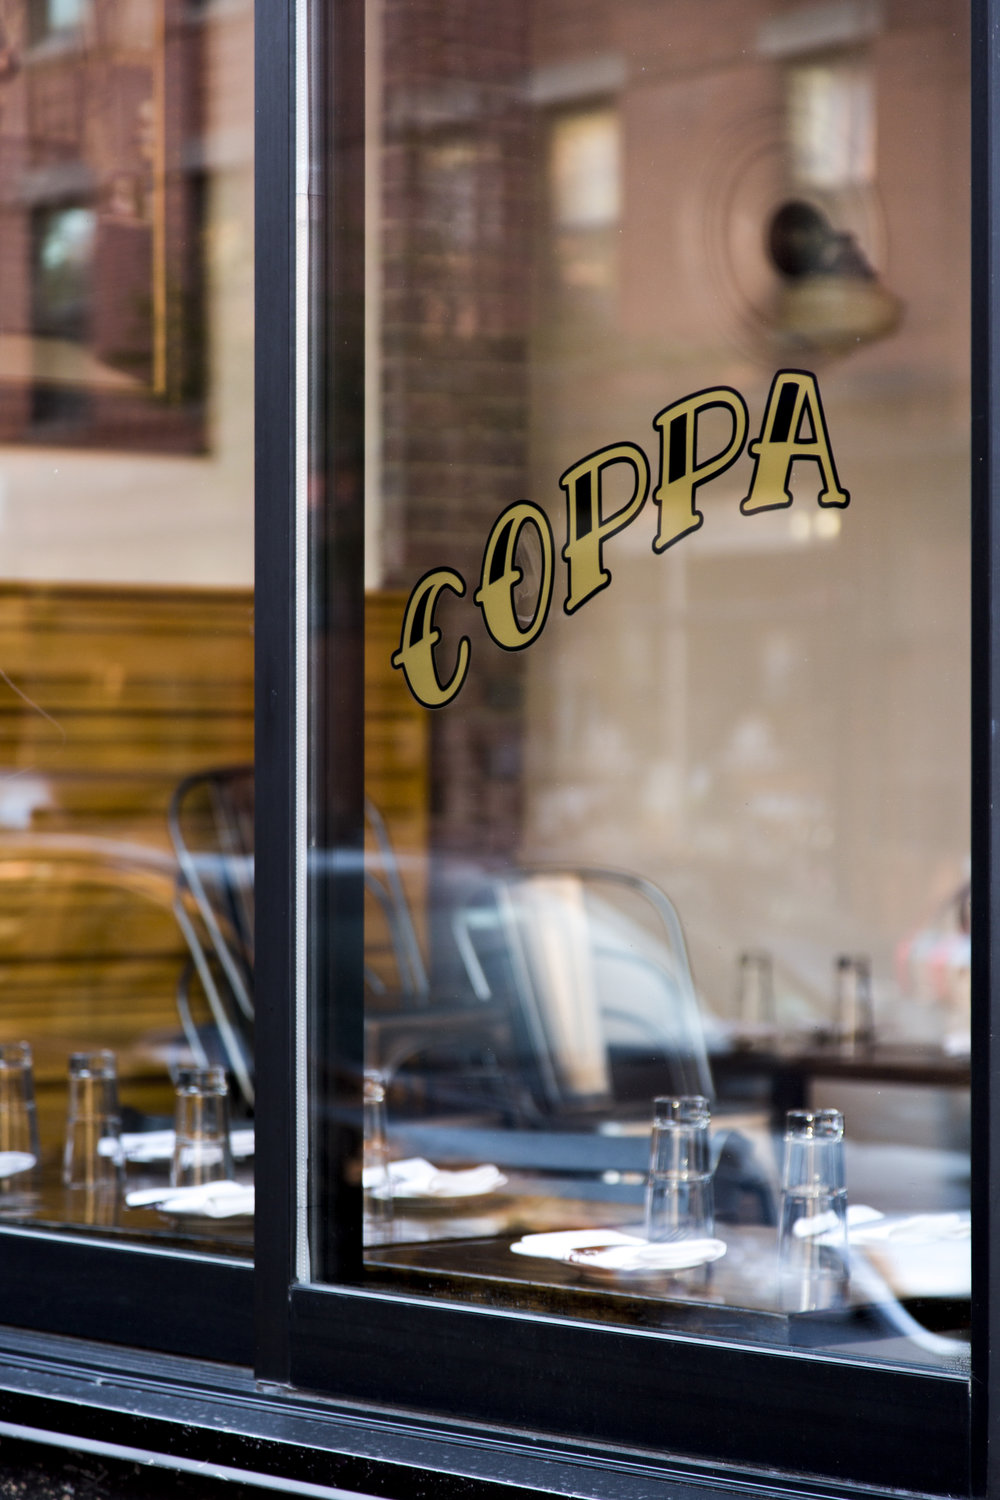 Coppa: A Neighborhood Enoteca